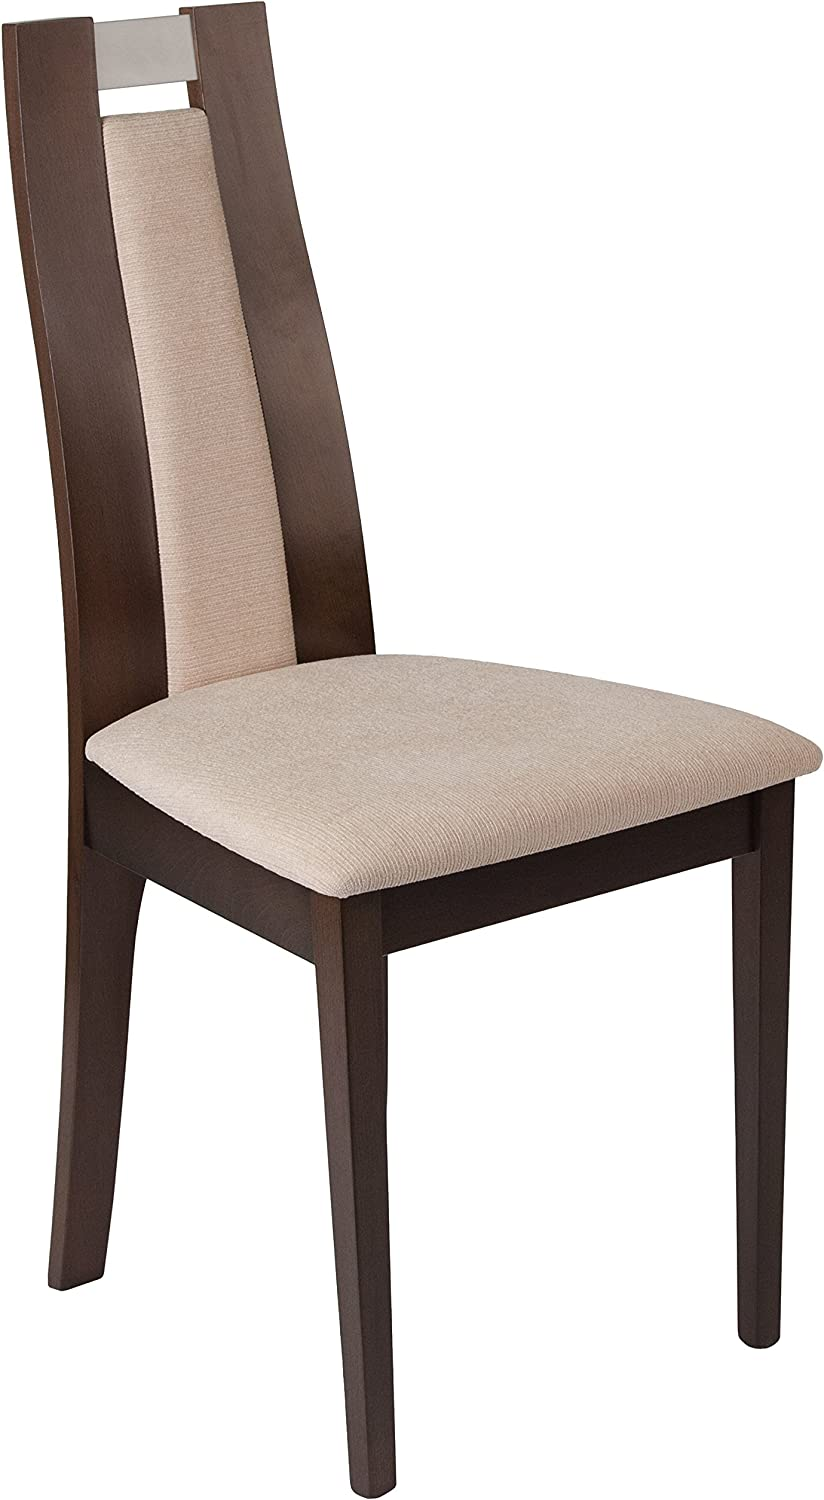 Flash Furniture Quincy Espresso Finish Wood Dining Chair with Curved Slat Beige Fabric Seat